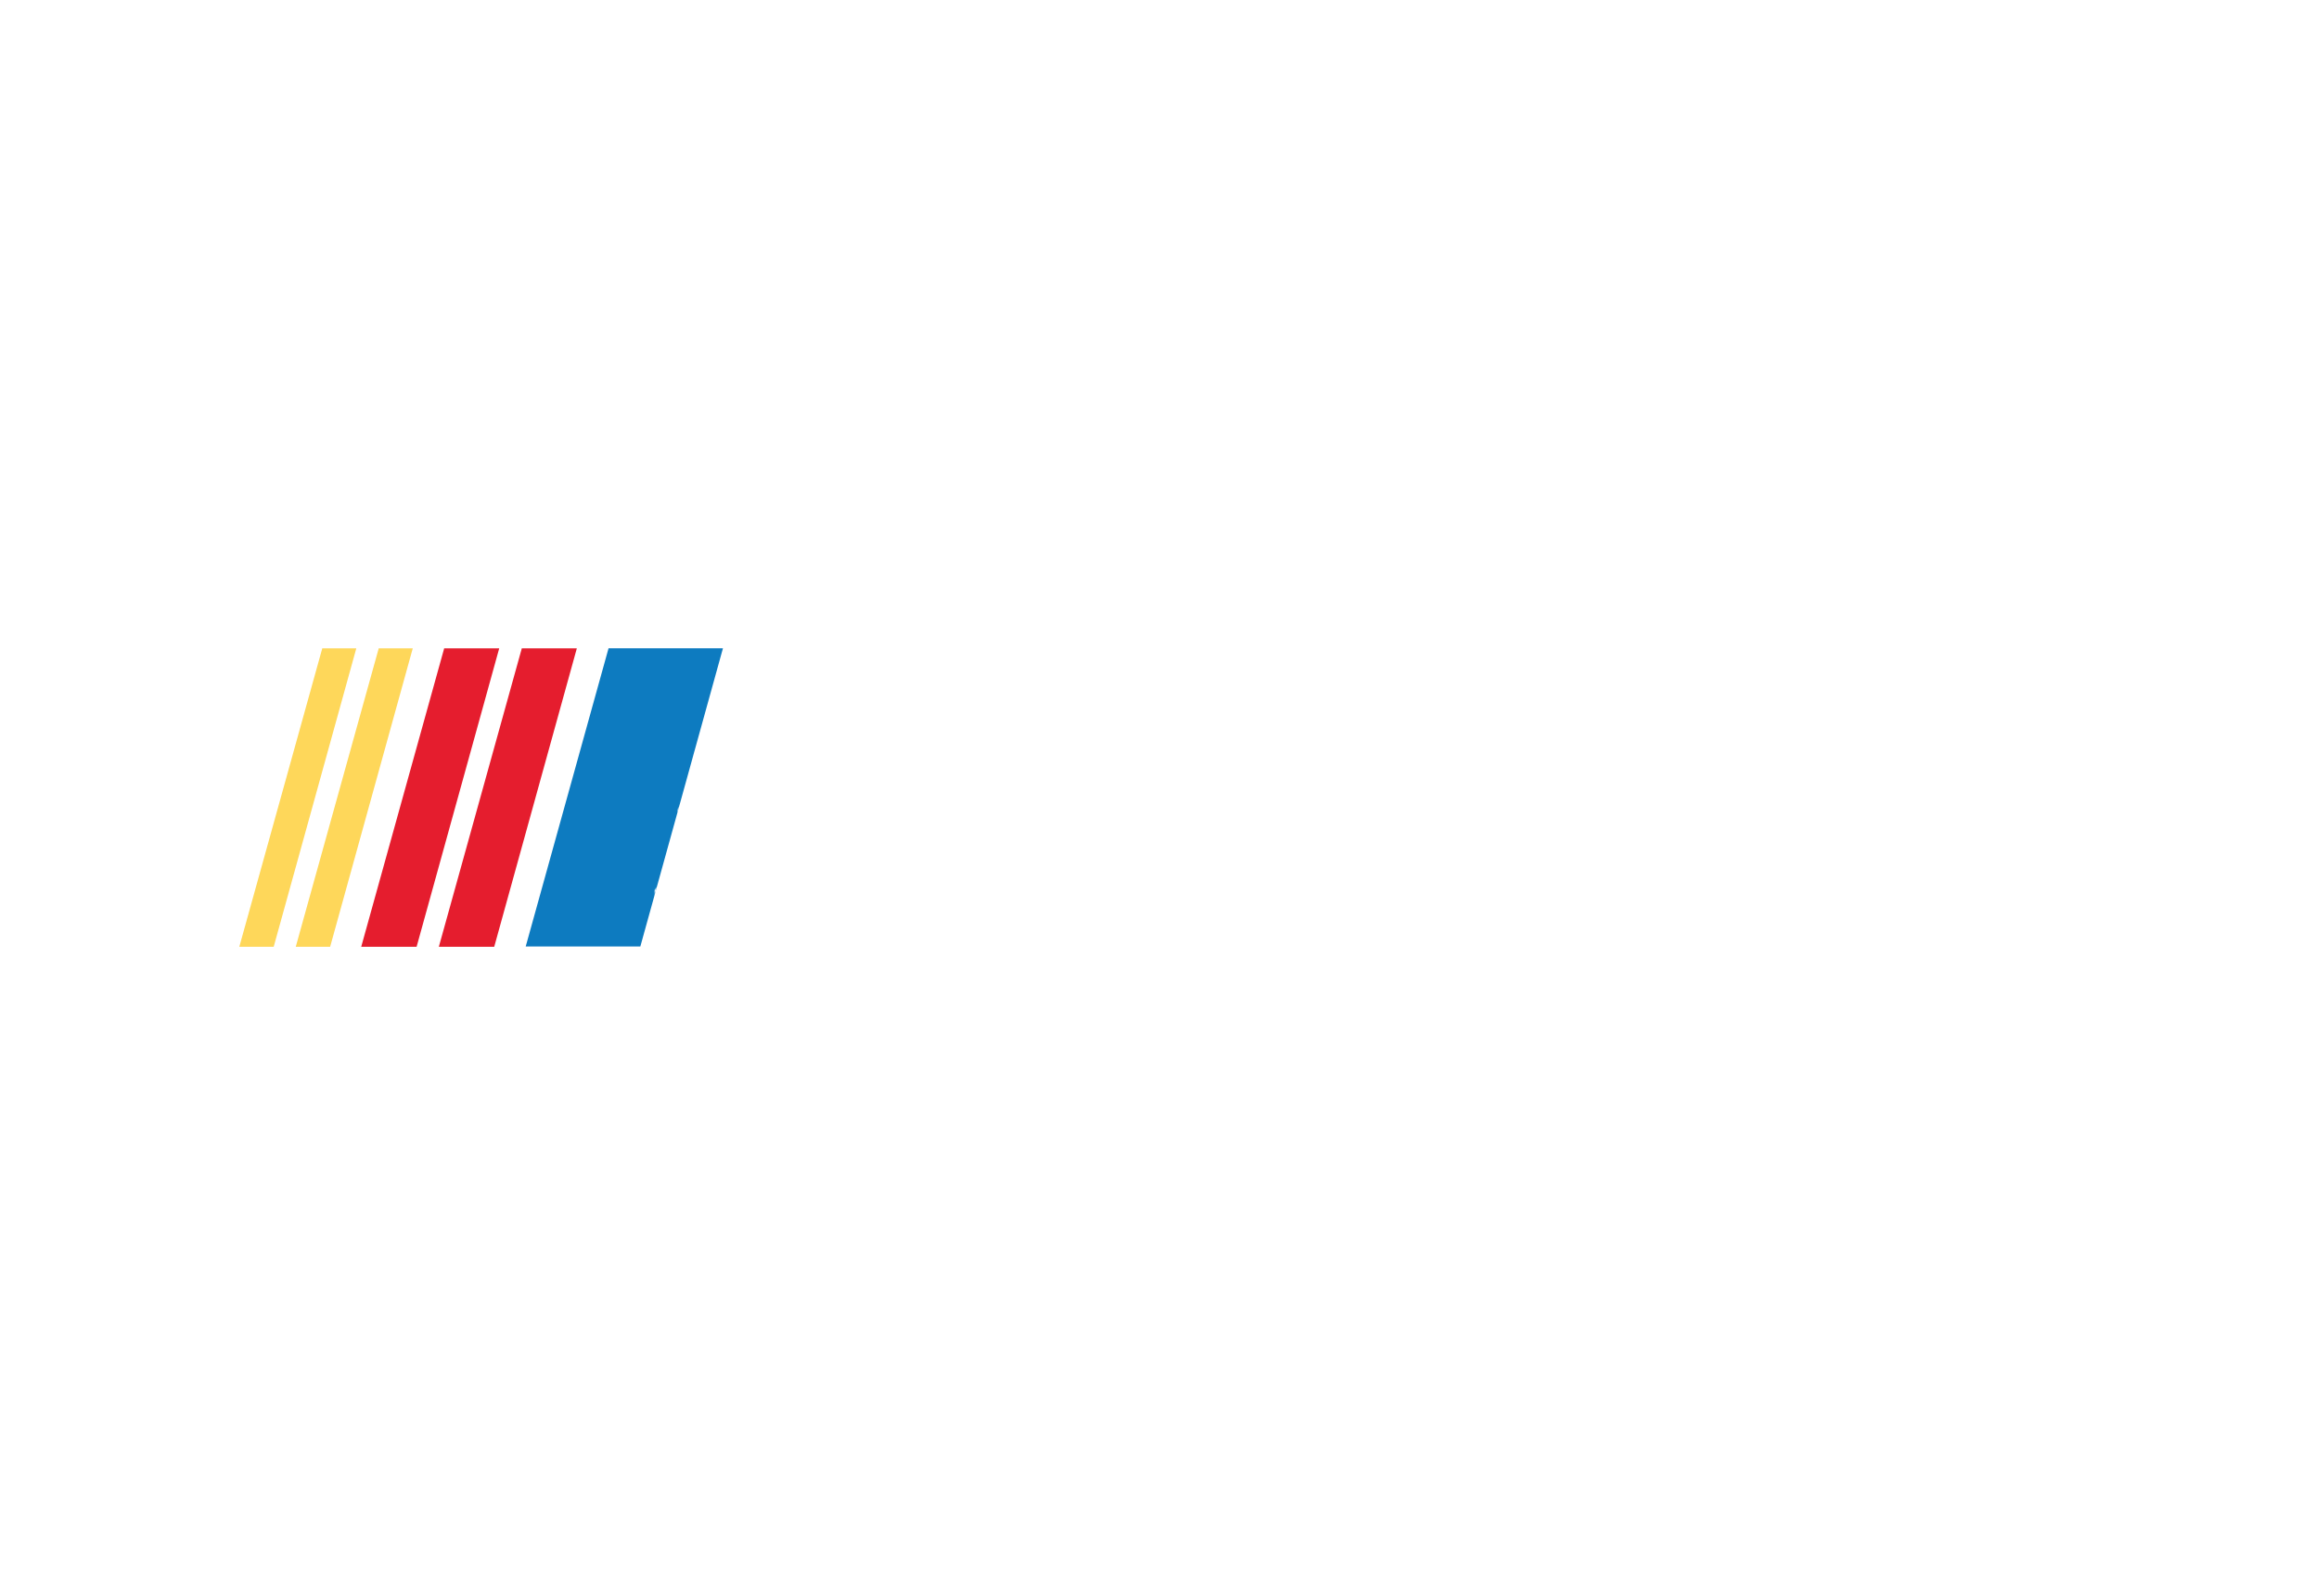 Nascar logo png. Automotive